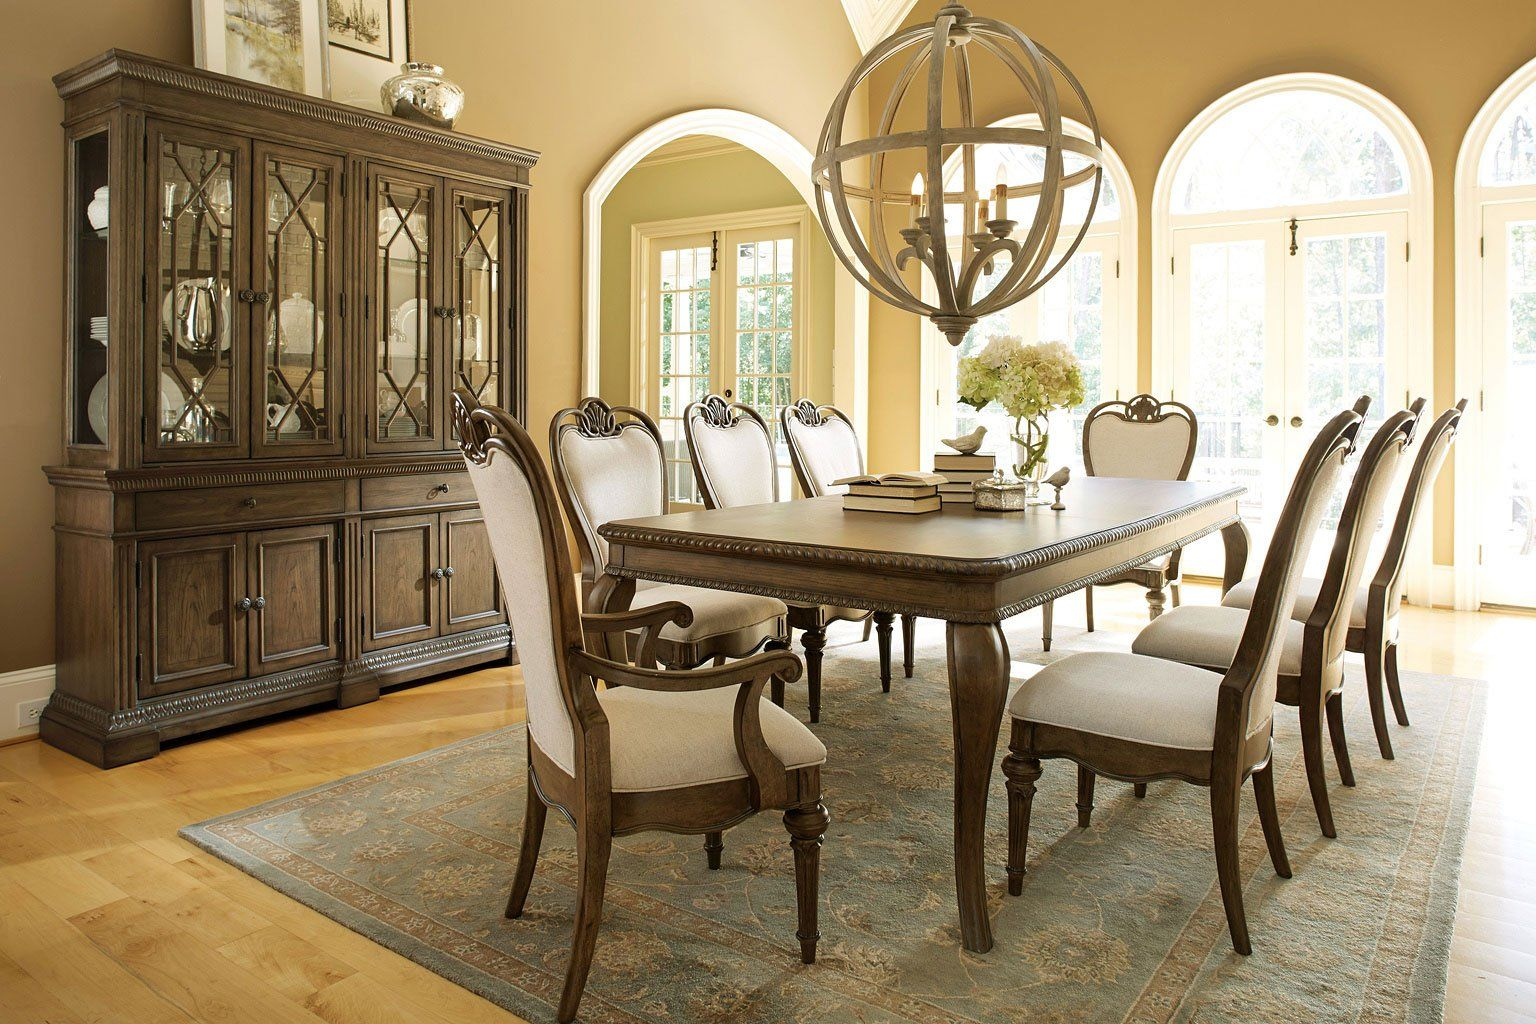 The Renaissance Rectangular Dining Room Set By Legacy Classic Provides The Perfect Backdrop To Y Dining Room Sets Rectangular Dining Room Set Classic Furniture Dining rooms legacy classic